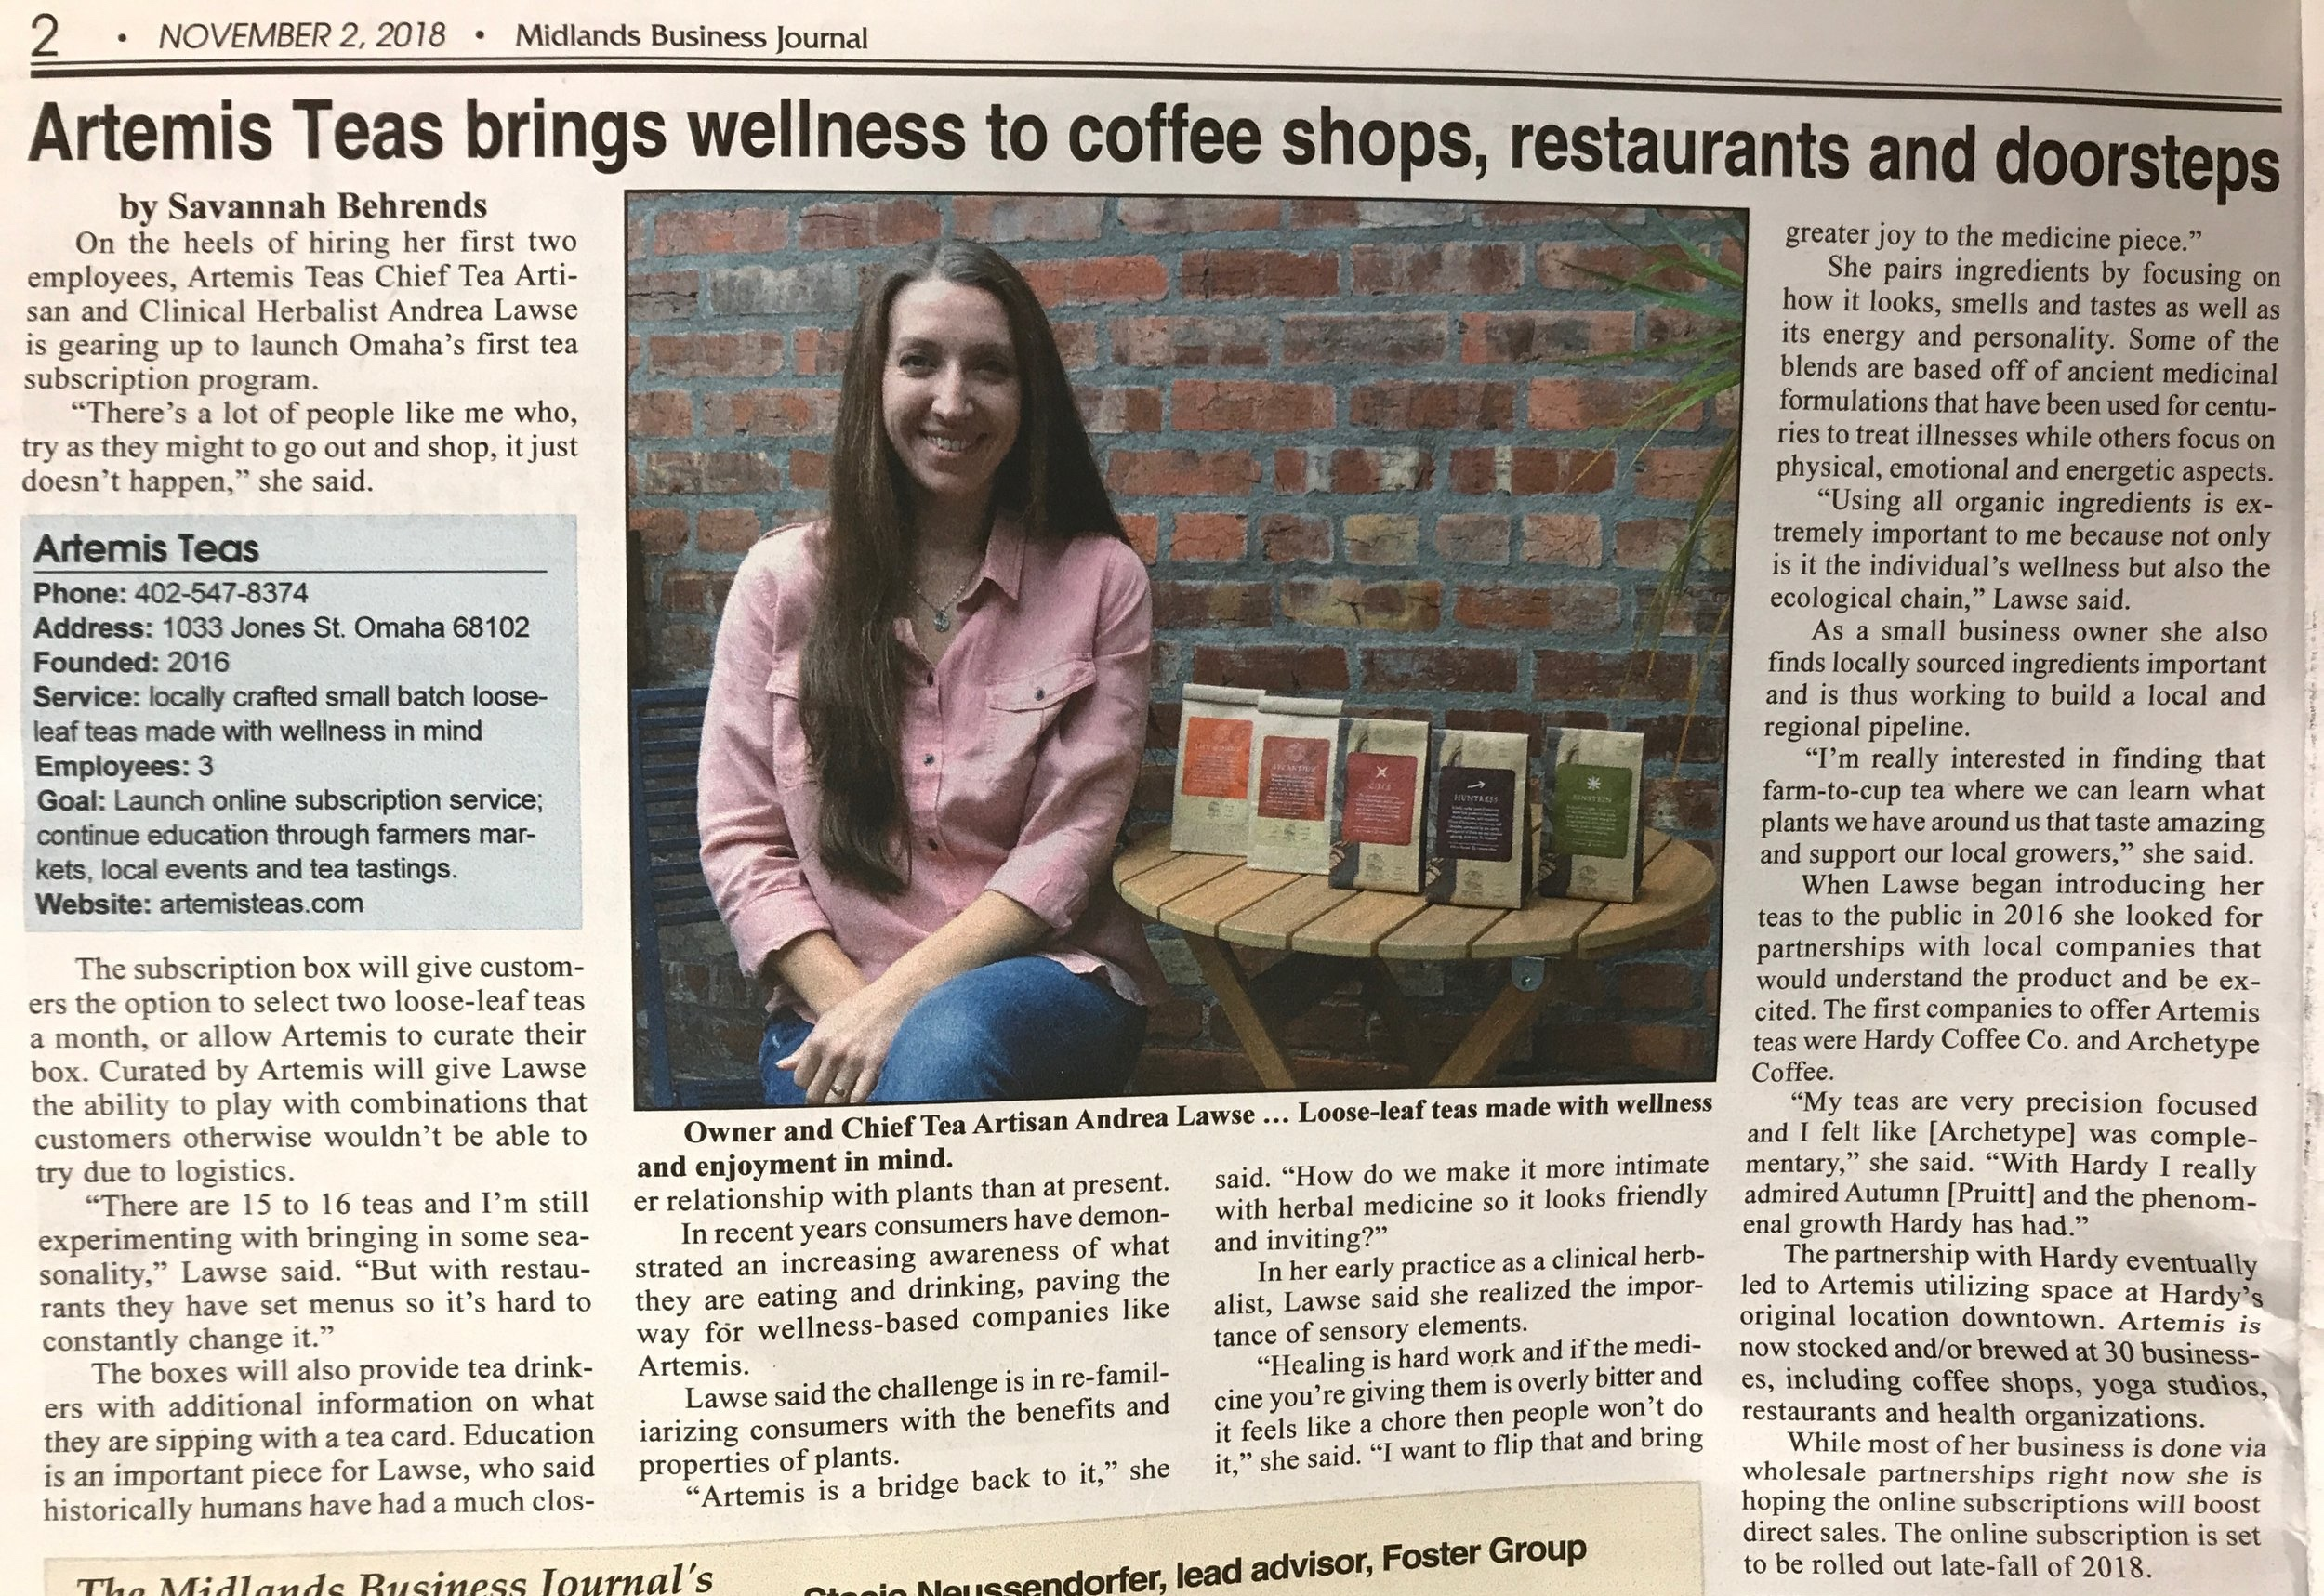 Midland's Business Journal - A delightful feature in the November 2, 2018 edition of Midland's Business Journal, focused on the launch of our subscription Tea Parcels.